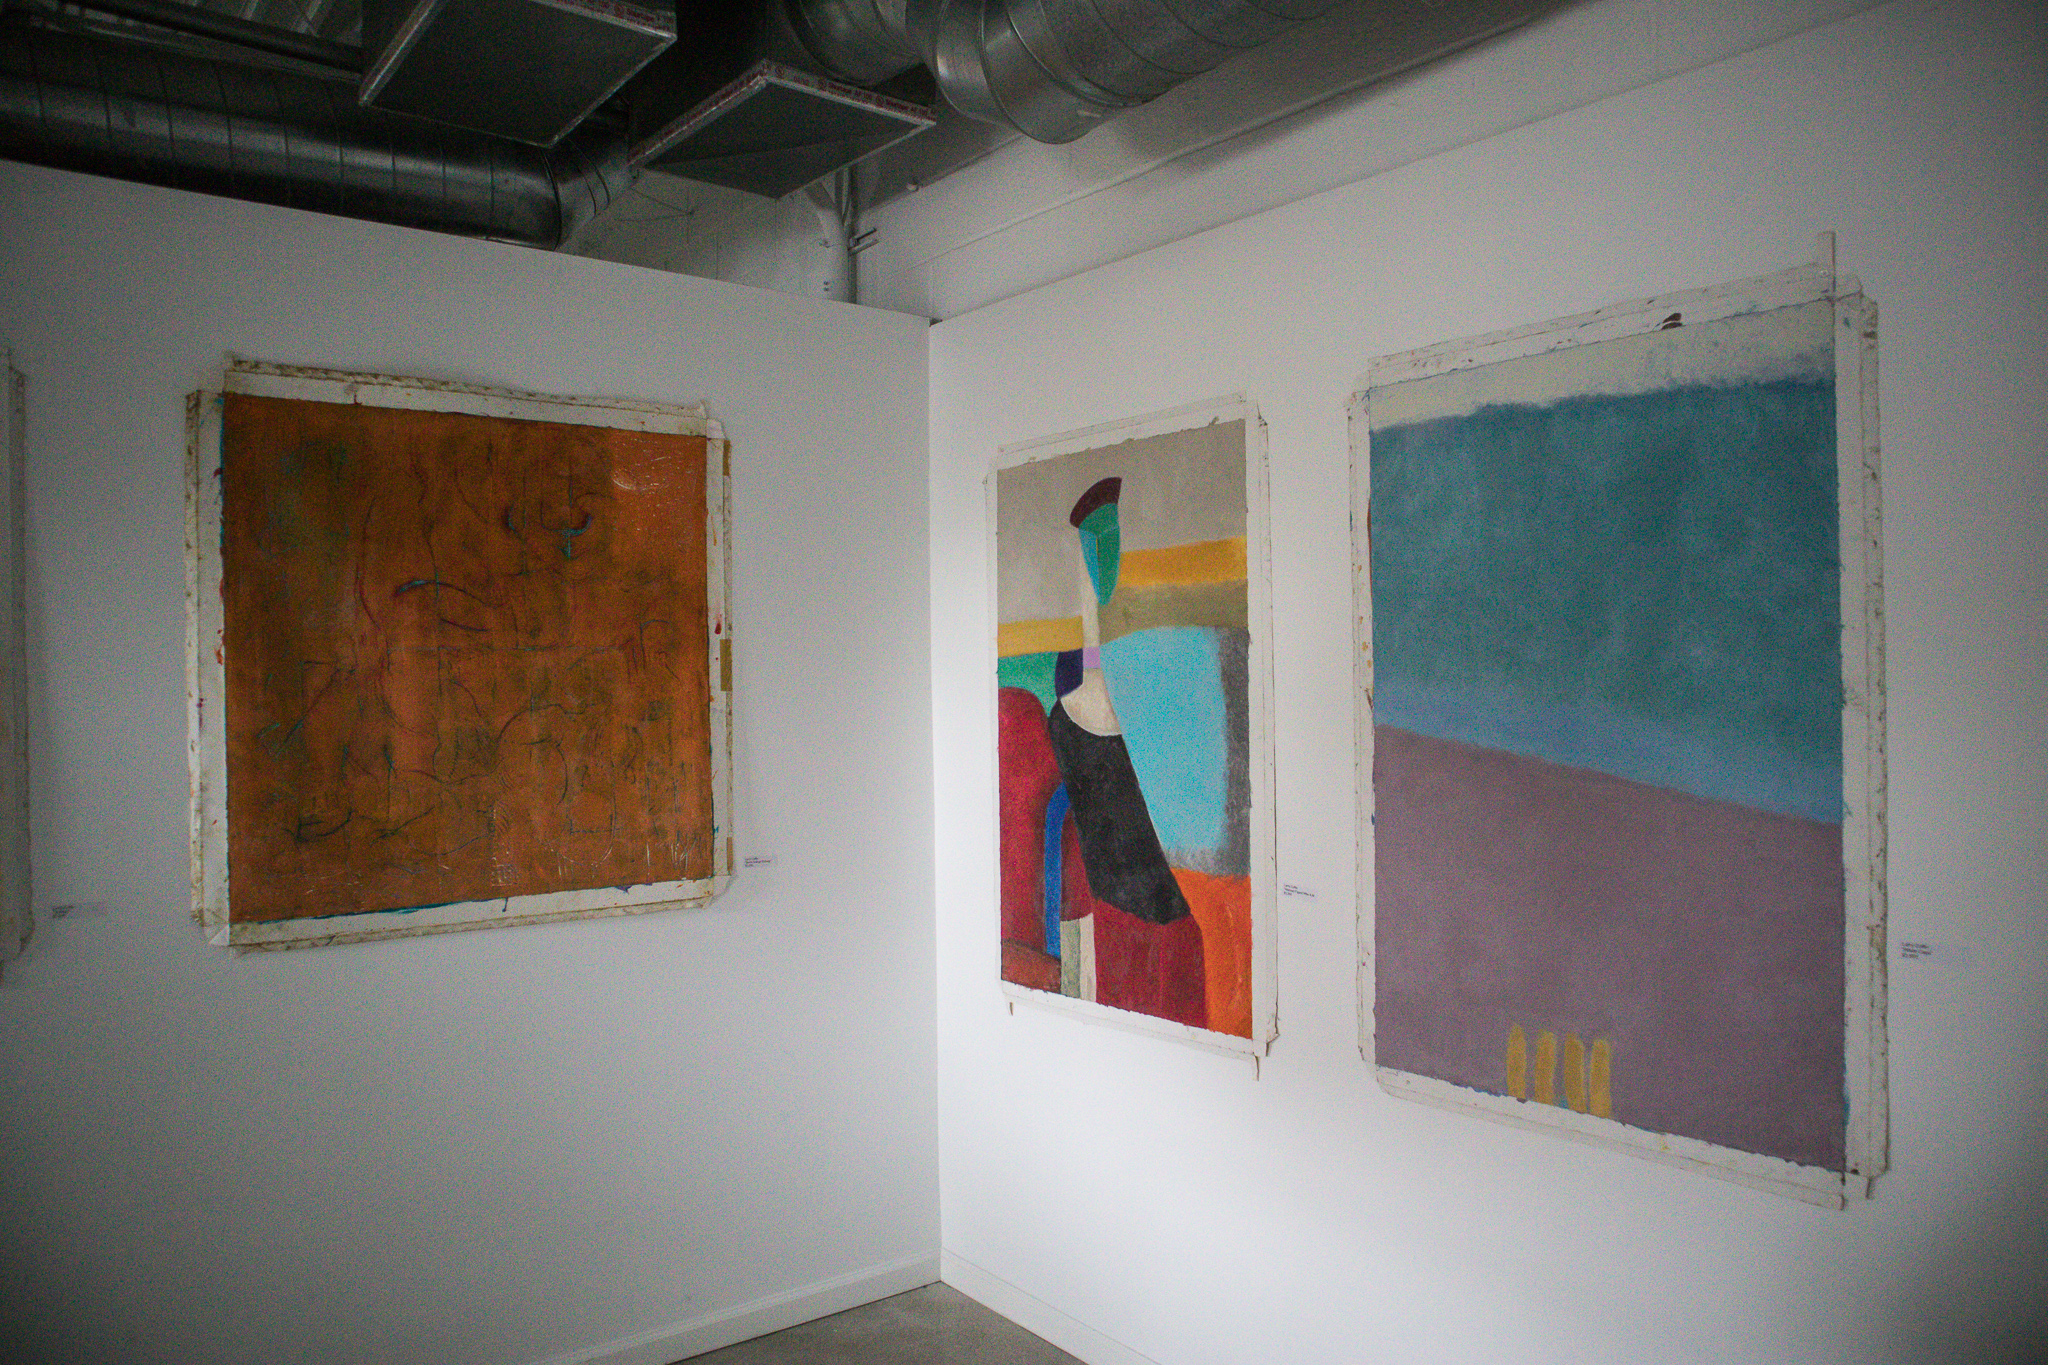 2nd From Right: Abstract figure: after A.M. / Info. on request for Far Right piece.